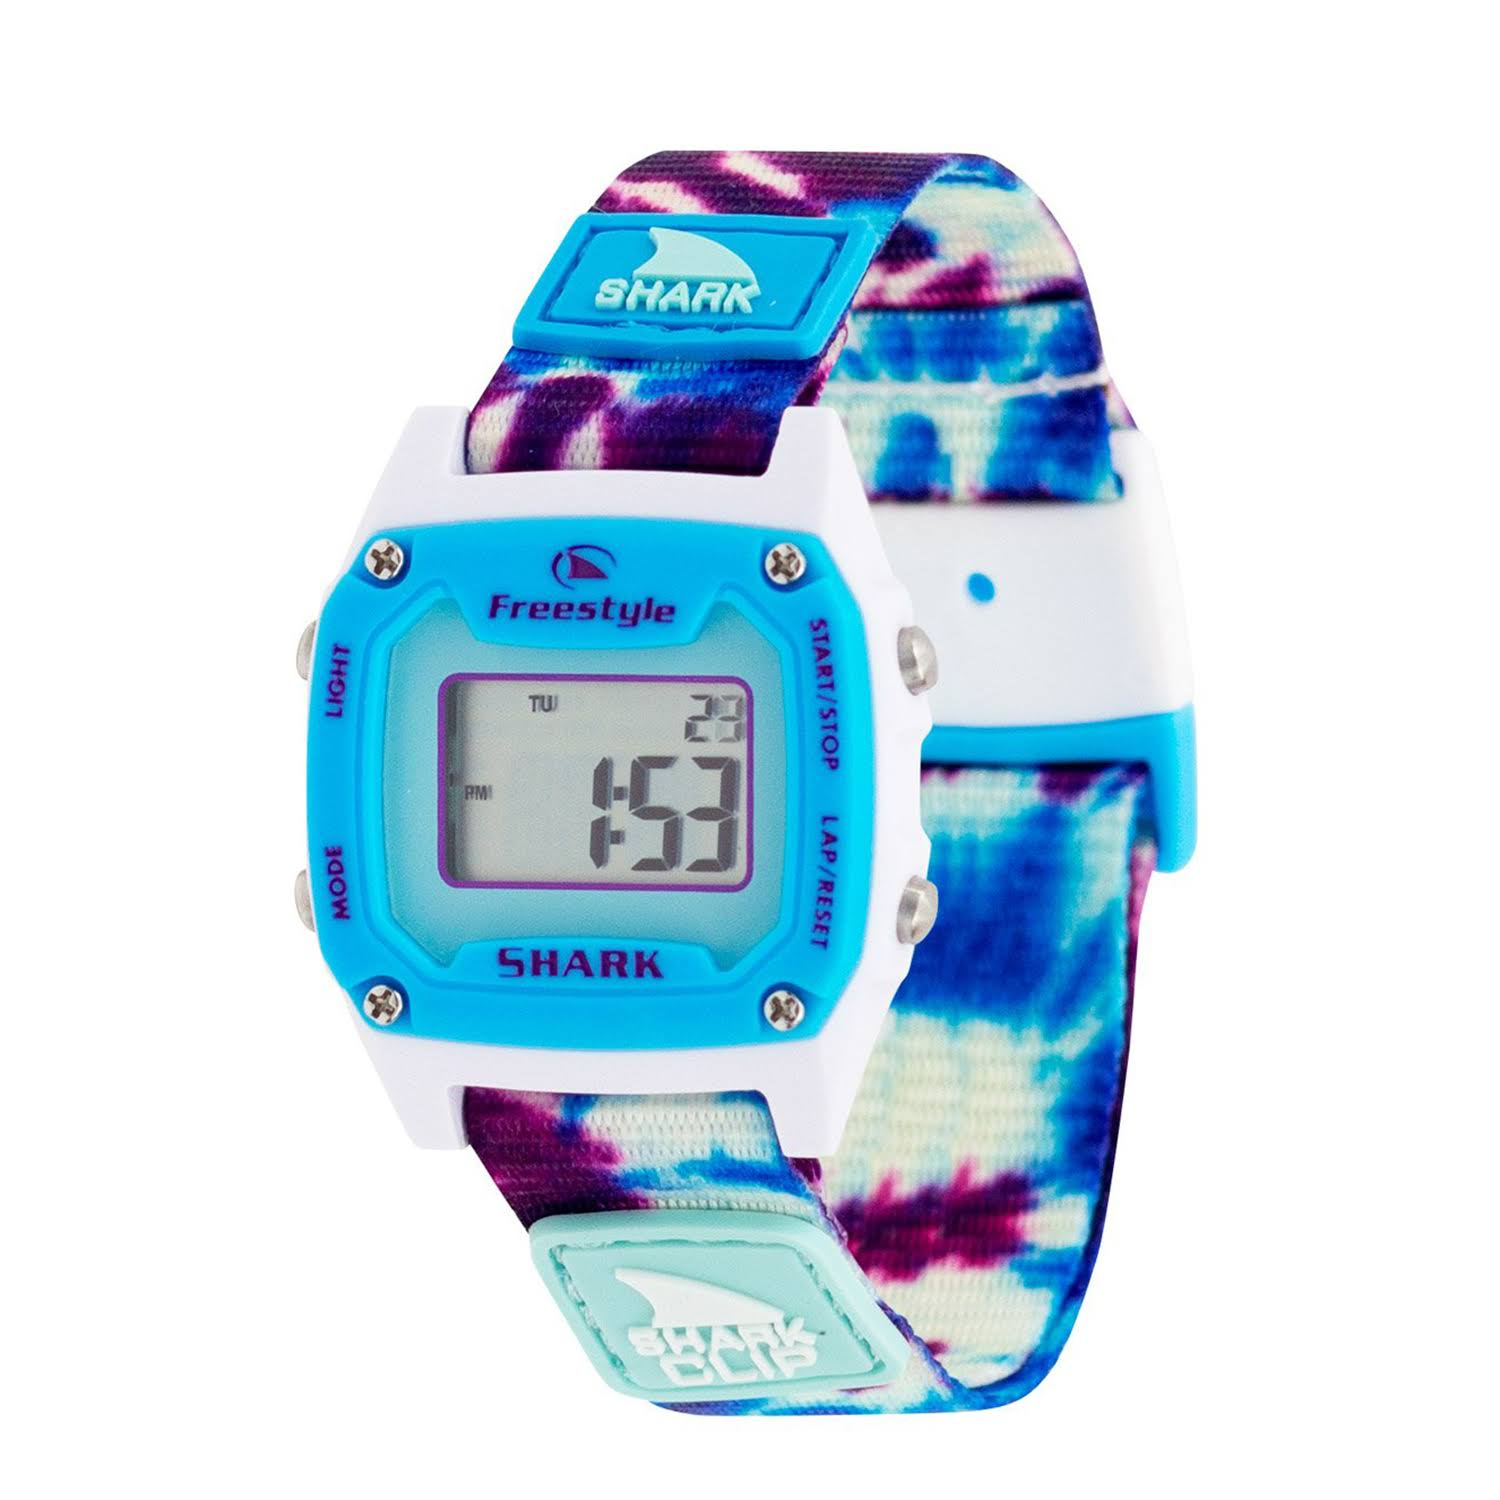 Freestyle Shark Mini Clip Watch - Tie Dye Blue